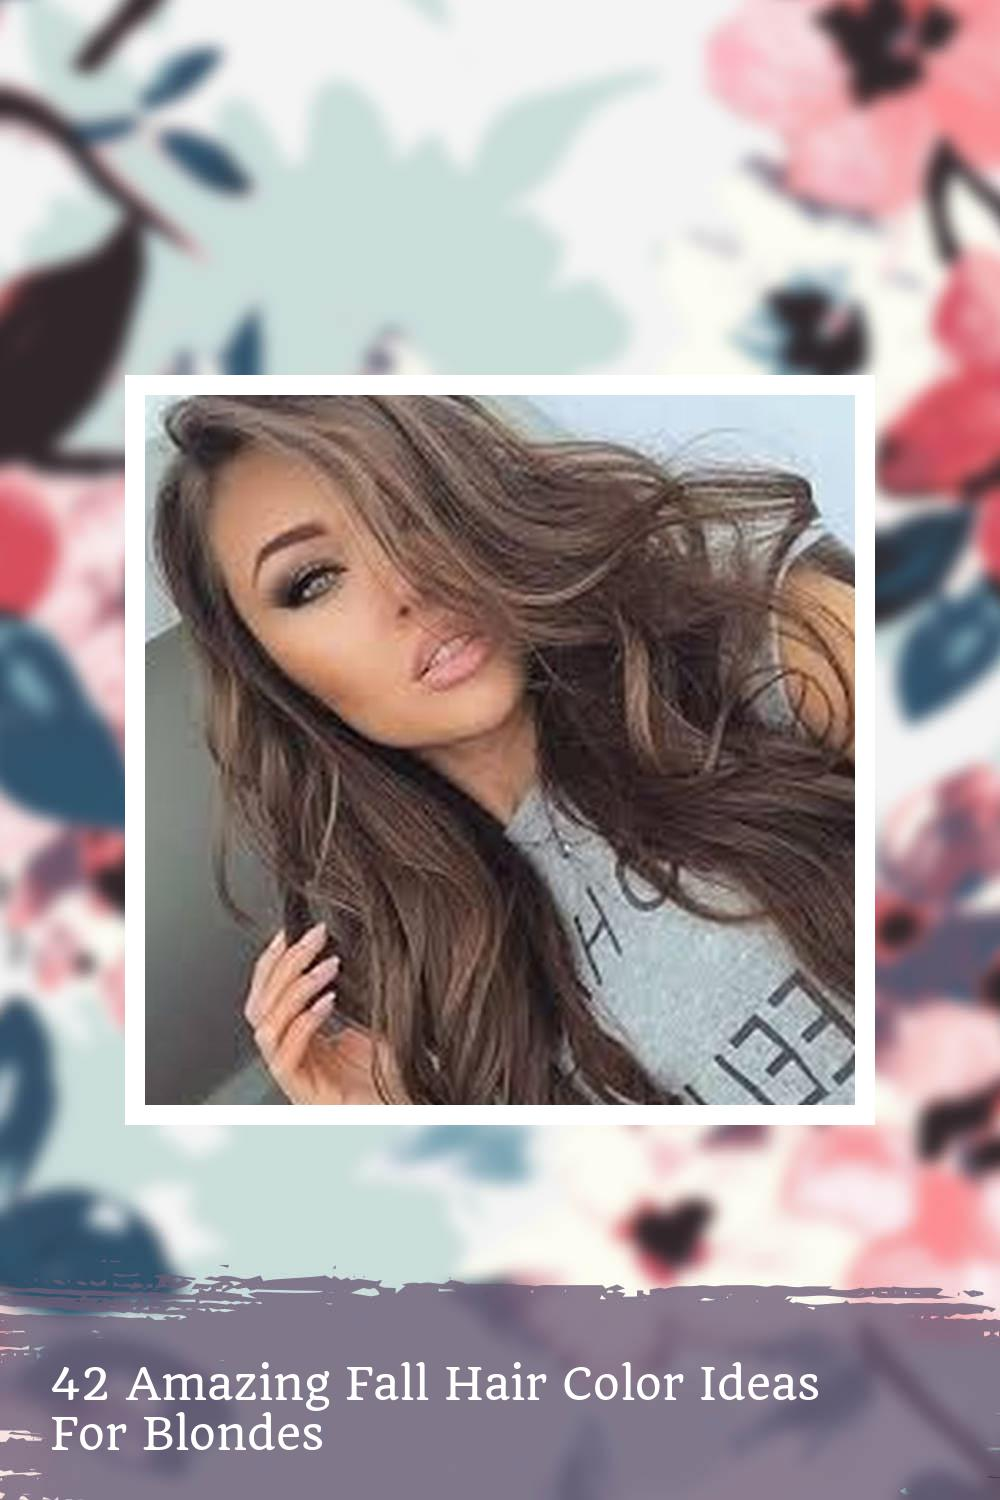 42 Amazing Fall Hair Color Ideas For Blondes 1